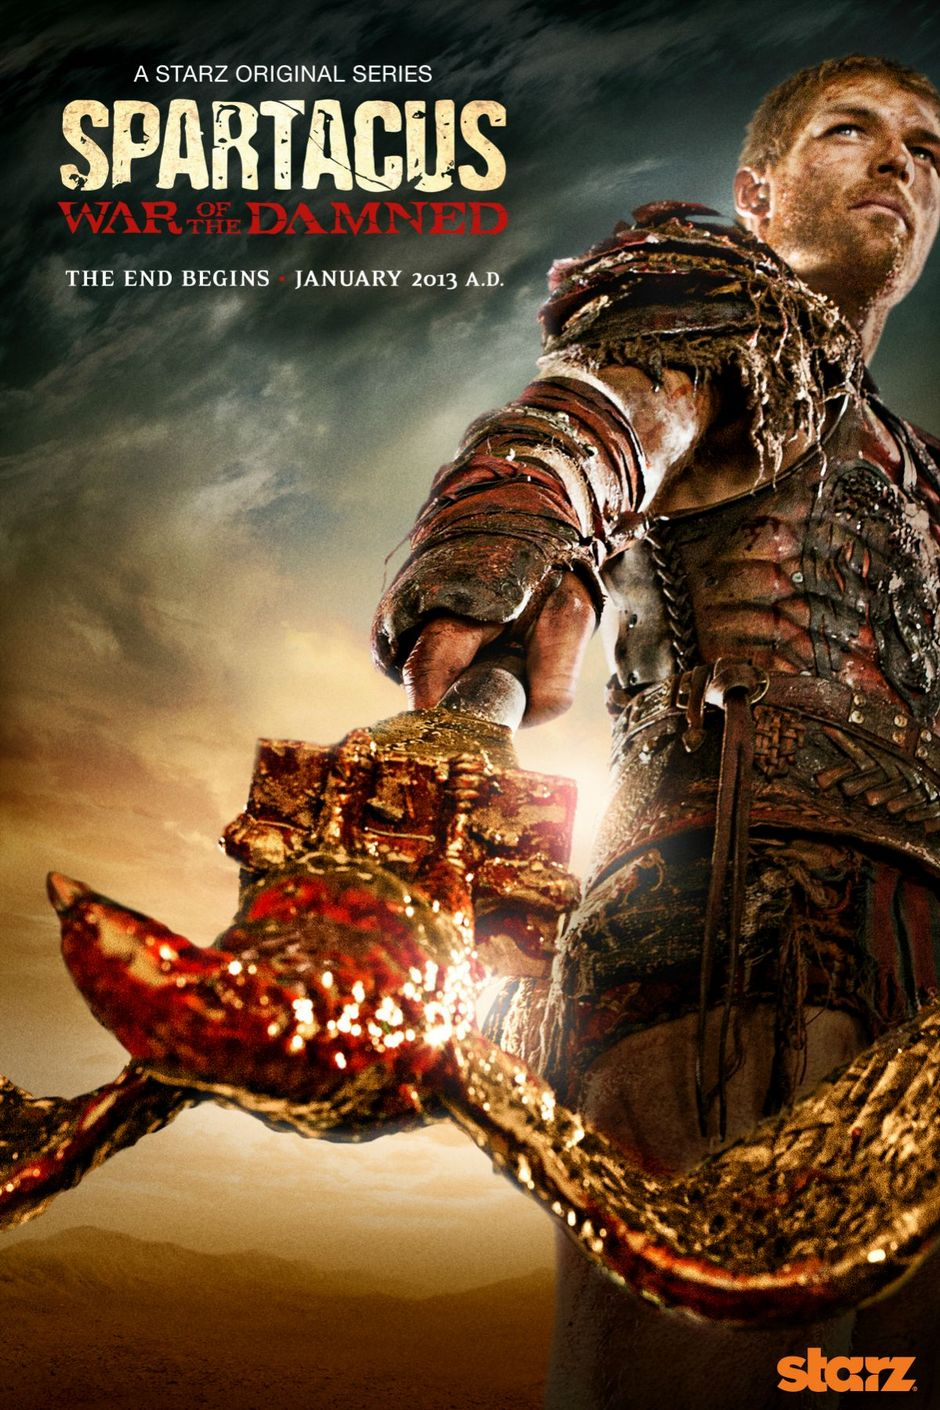 Free download movie full speed spartacus: war of the damned 720p.